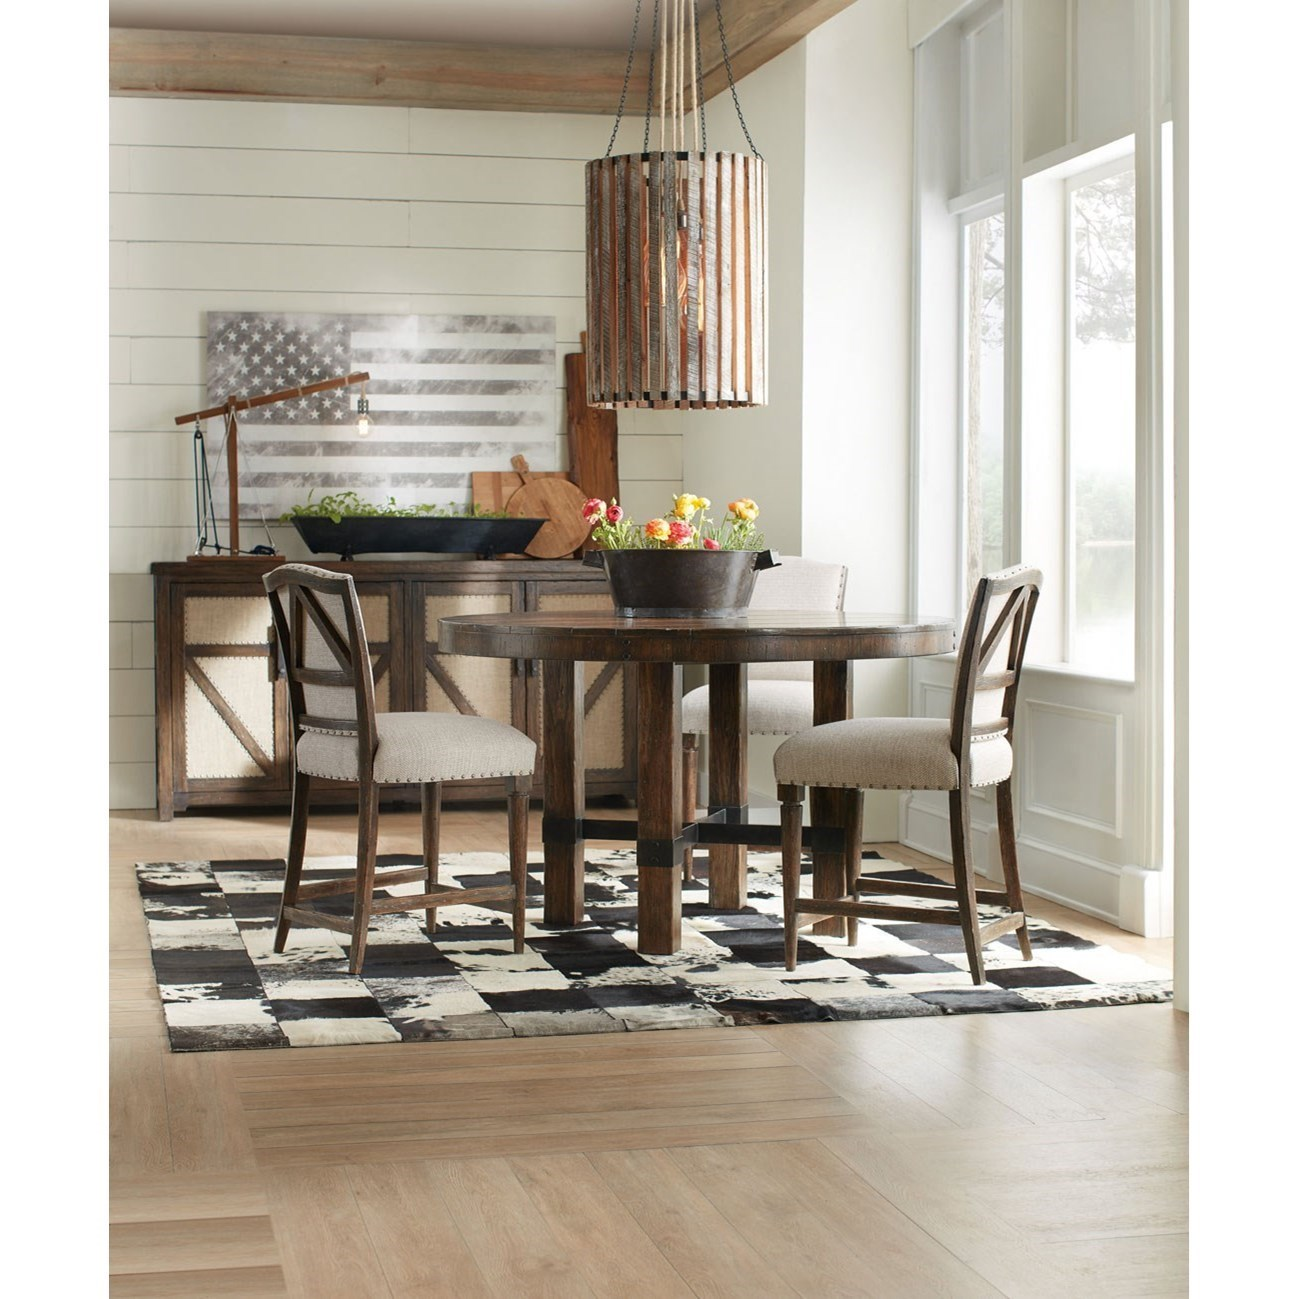 Hooker Furniture American Life   Roslyn CountyCasual Dining Room Group